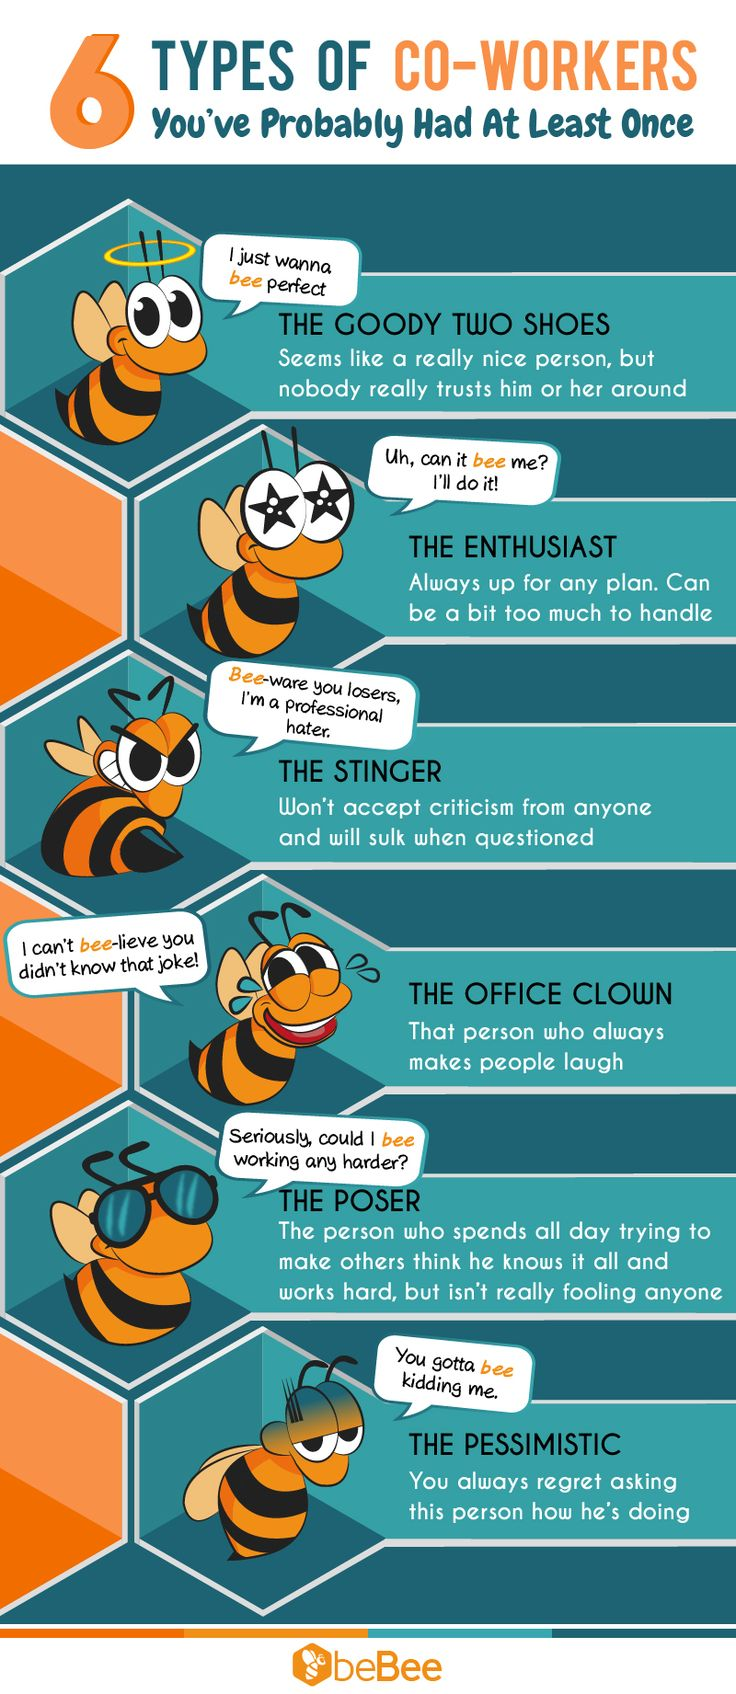 6 types of co-workers you've probably had at least once #Infographic #Job #Work #HumanResources #HR #beBee #SocialNetworks #SocialMedia